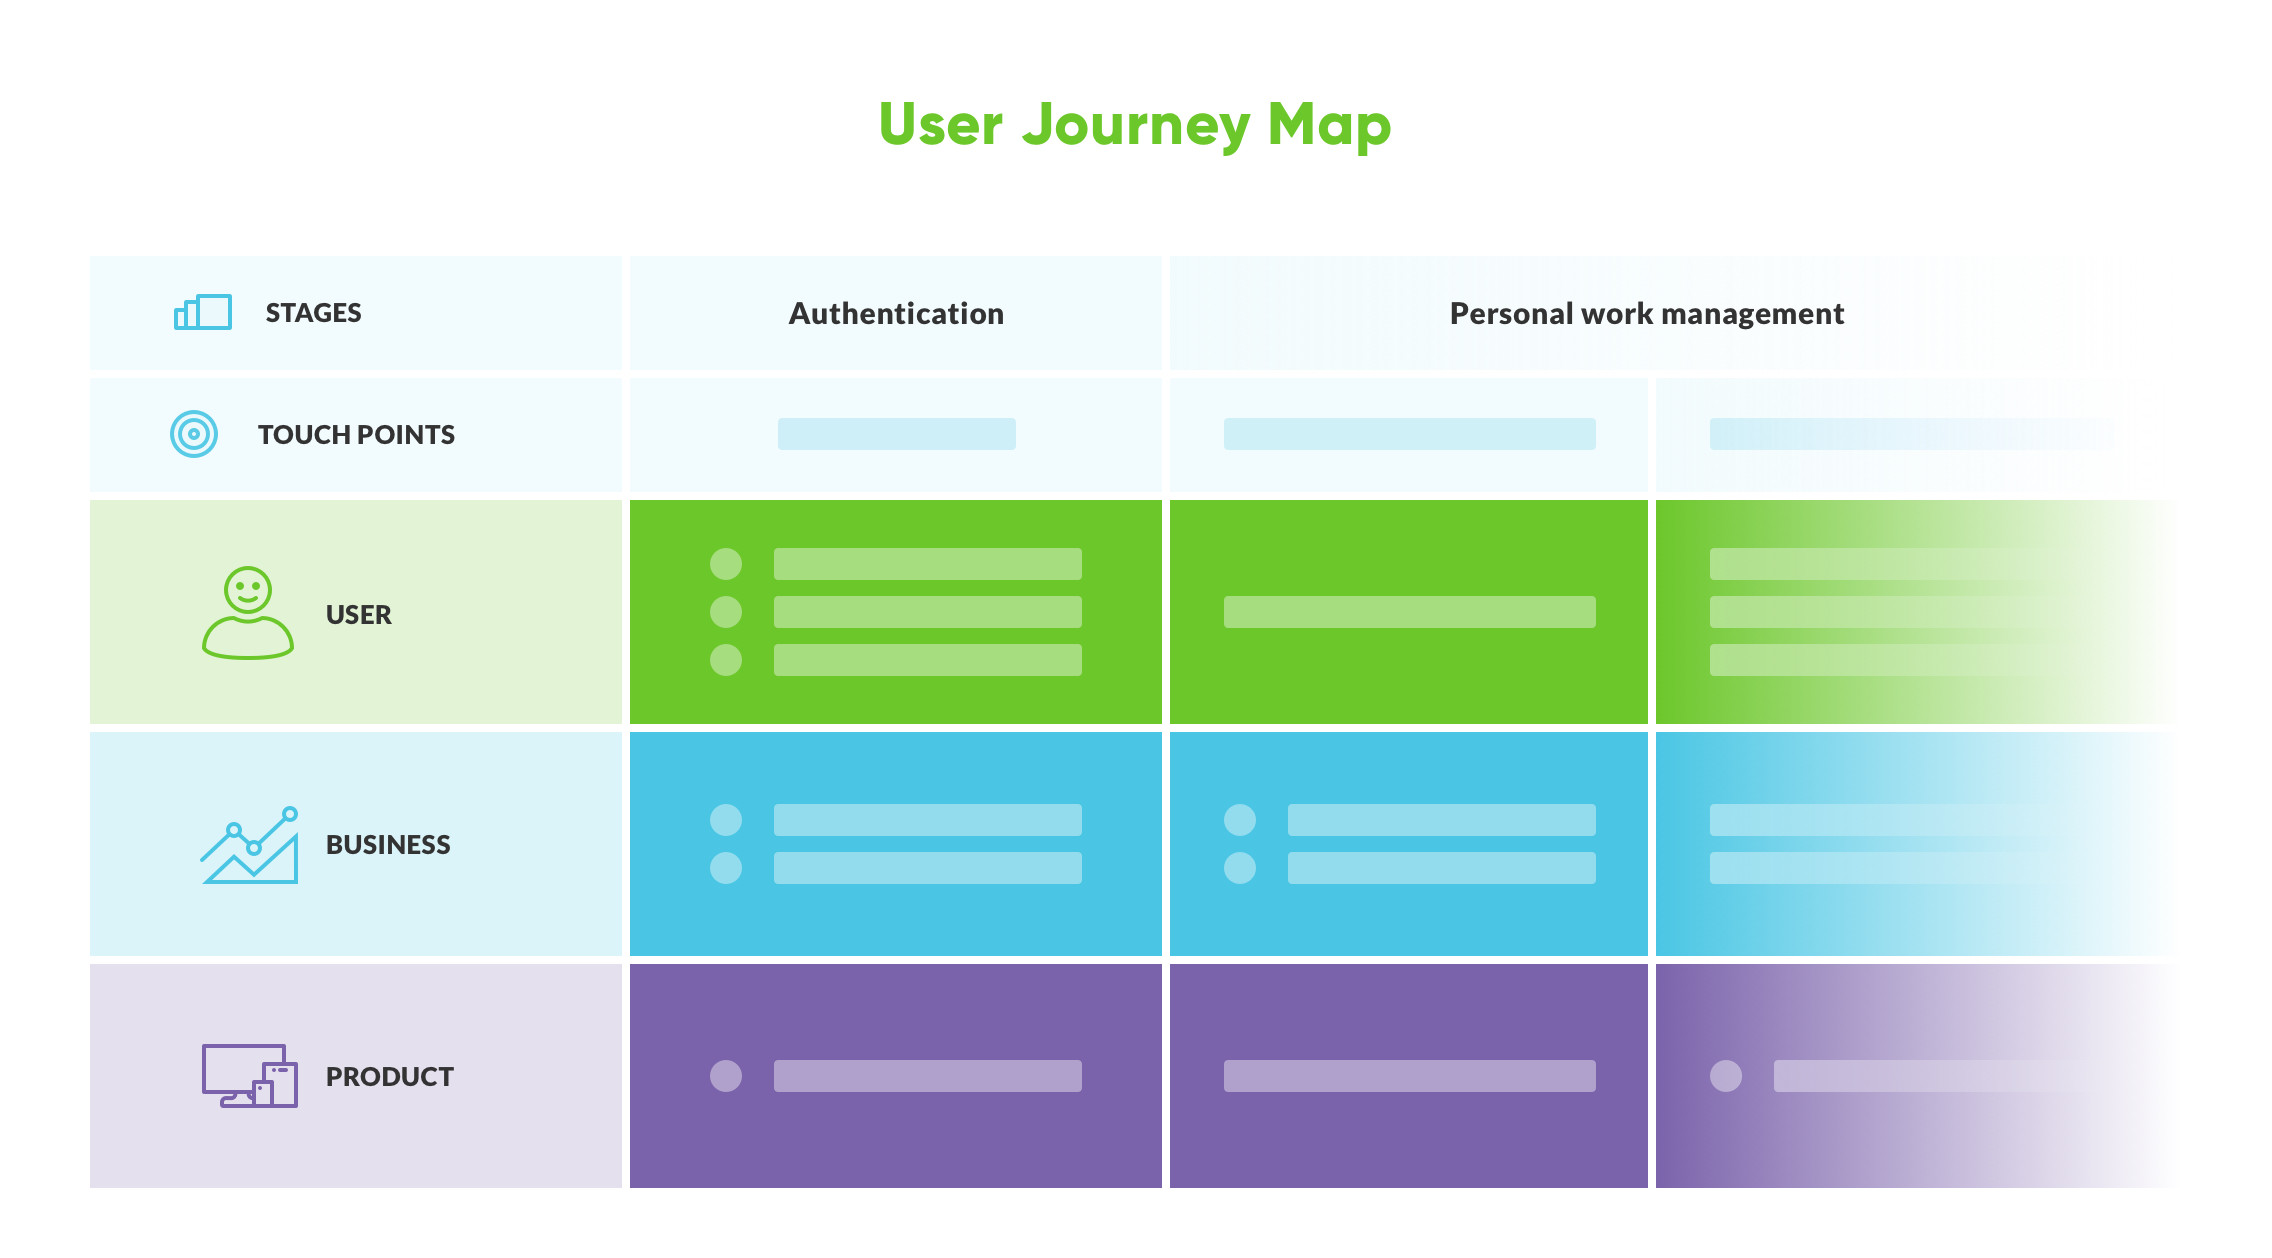 user-journey-mapping-uxda-work-process-ux-design.jpg-L-1.jpg